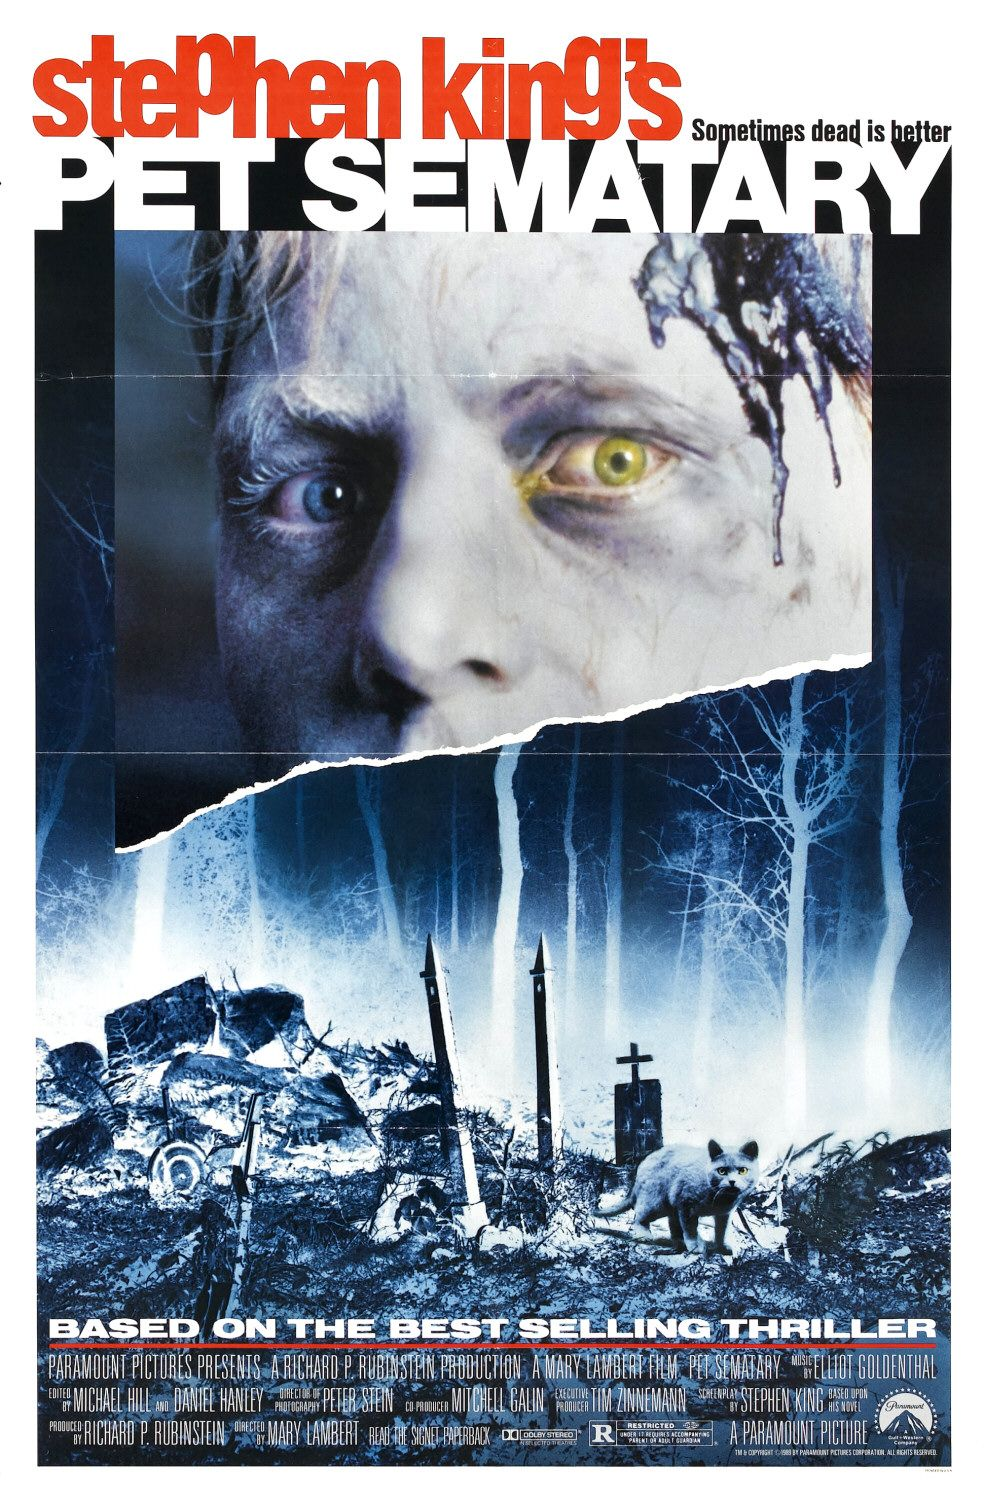 Stephen King Pet Sematary poster